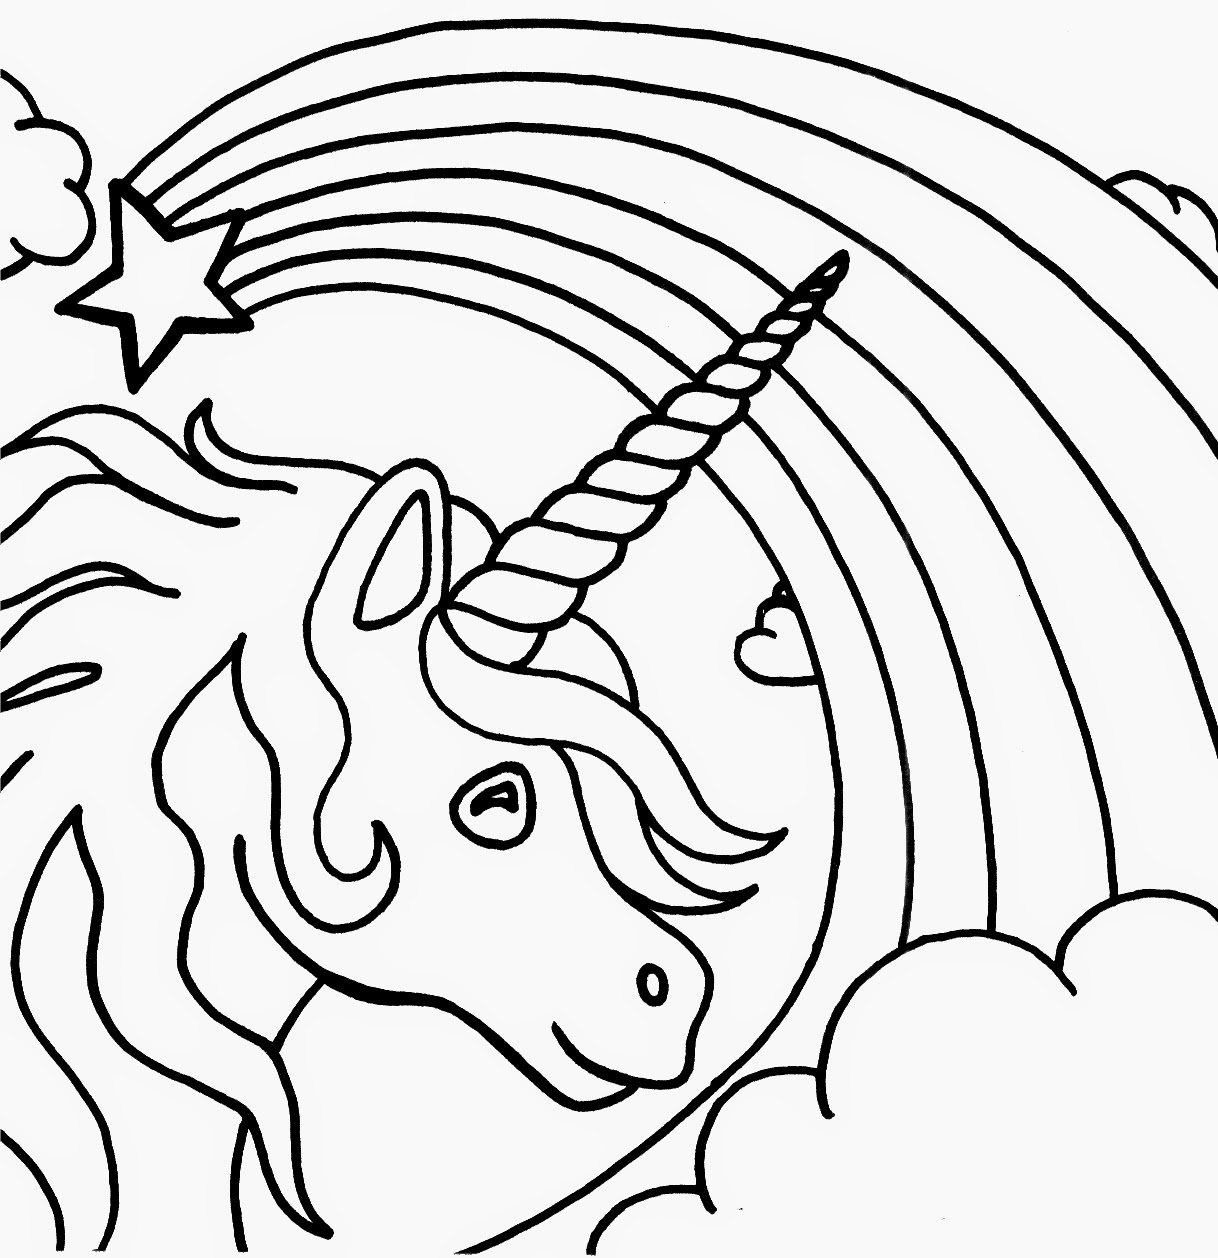 unicorn coloring sheets printable super sweet unicorn coloring pages free printable printable unicorn coloring sheets